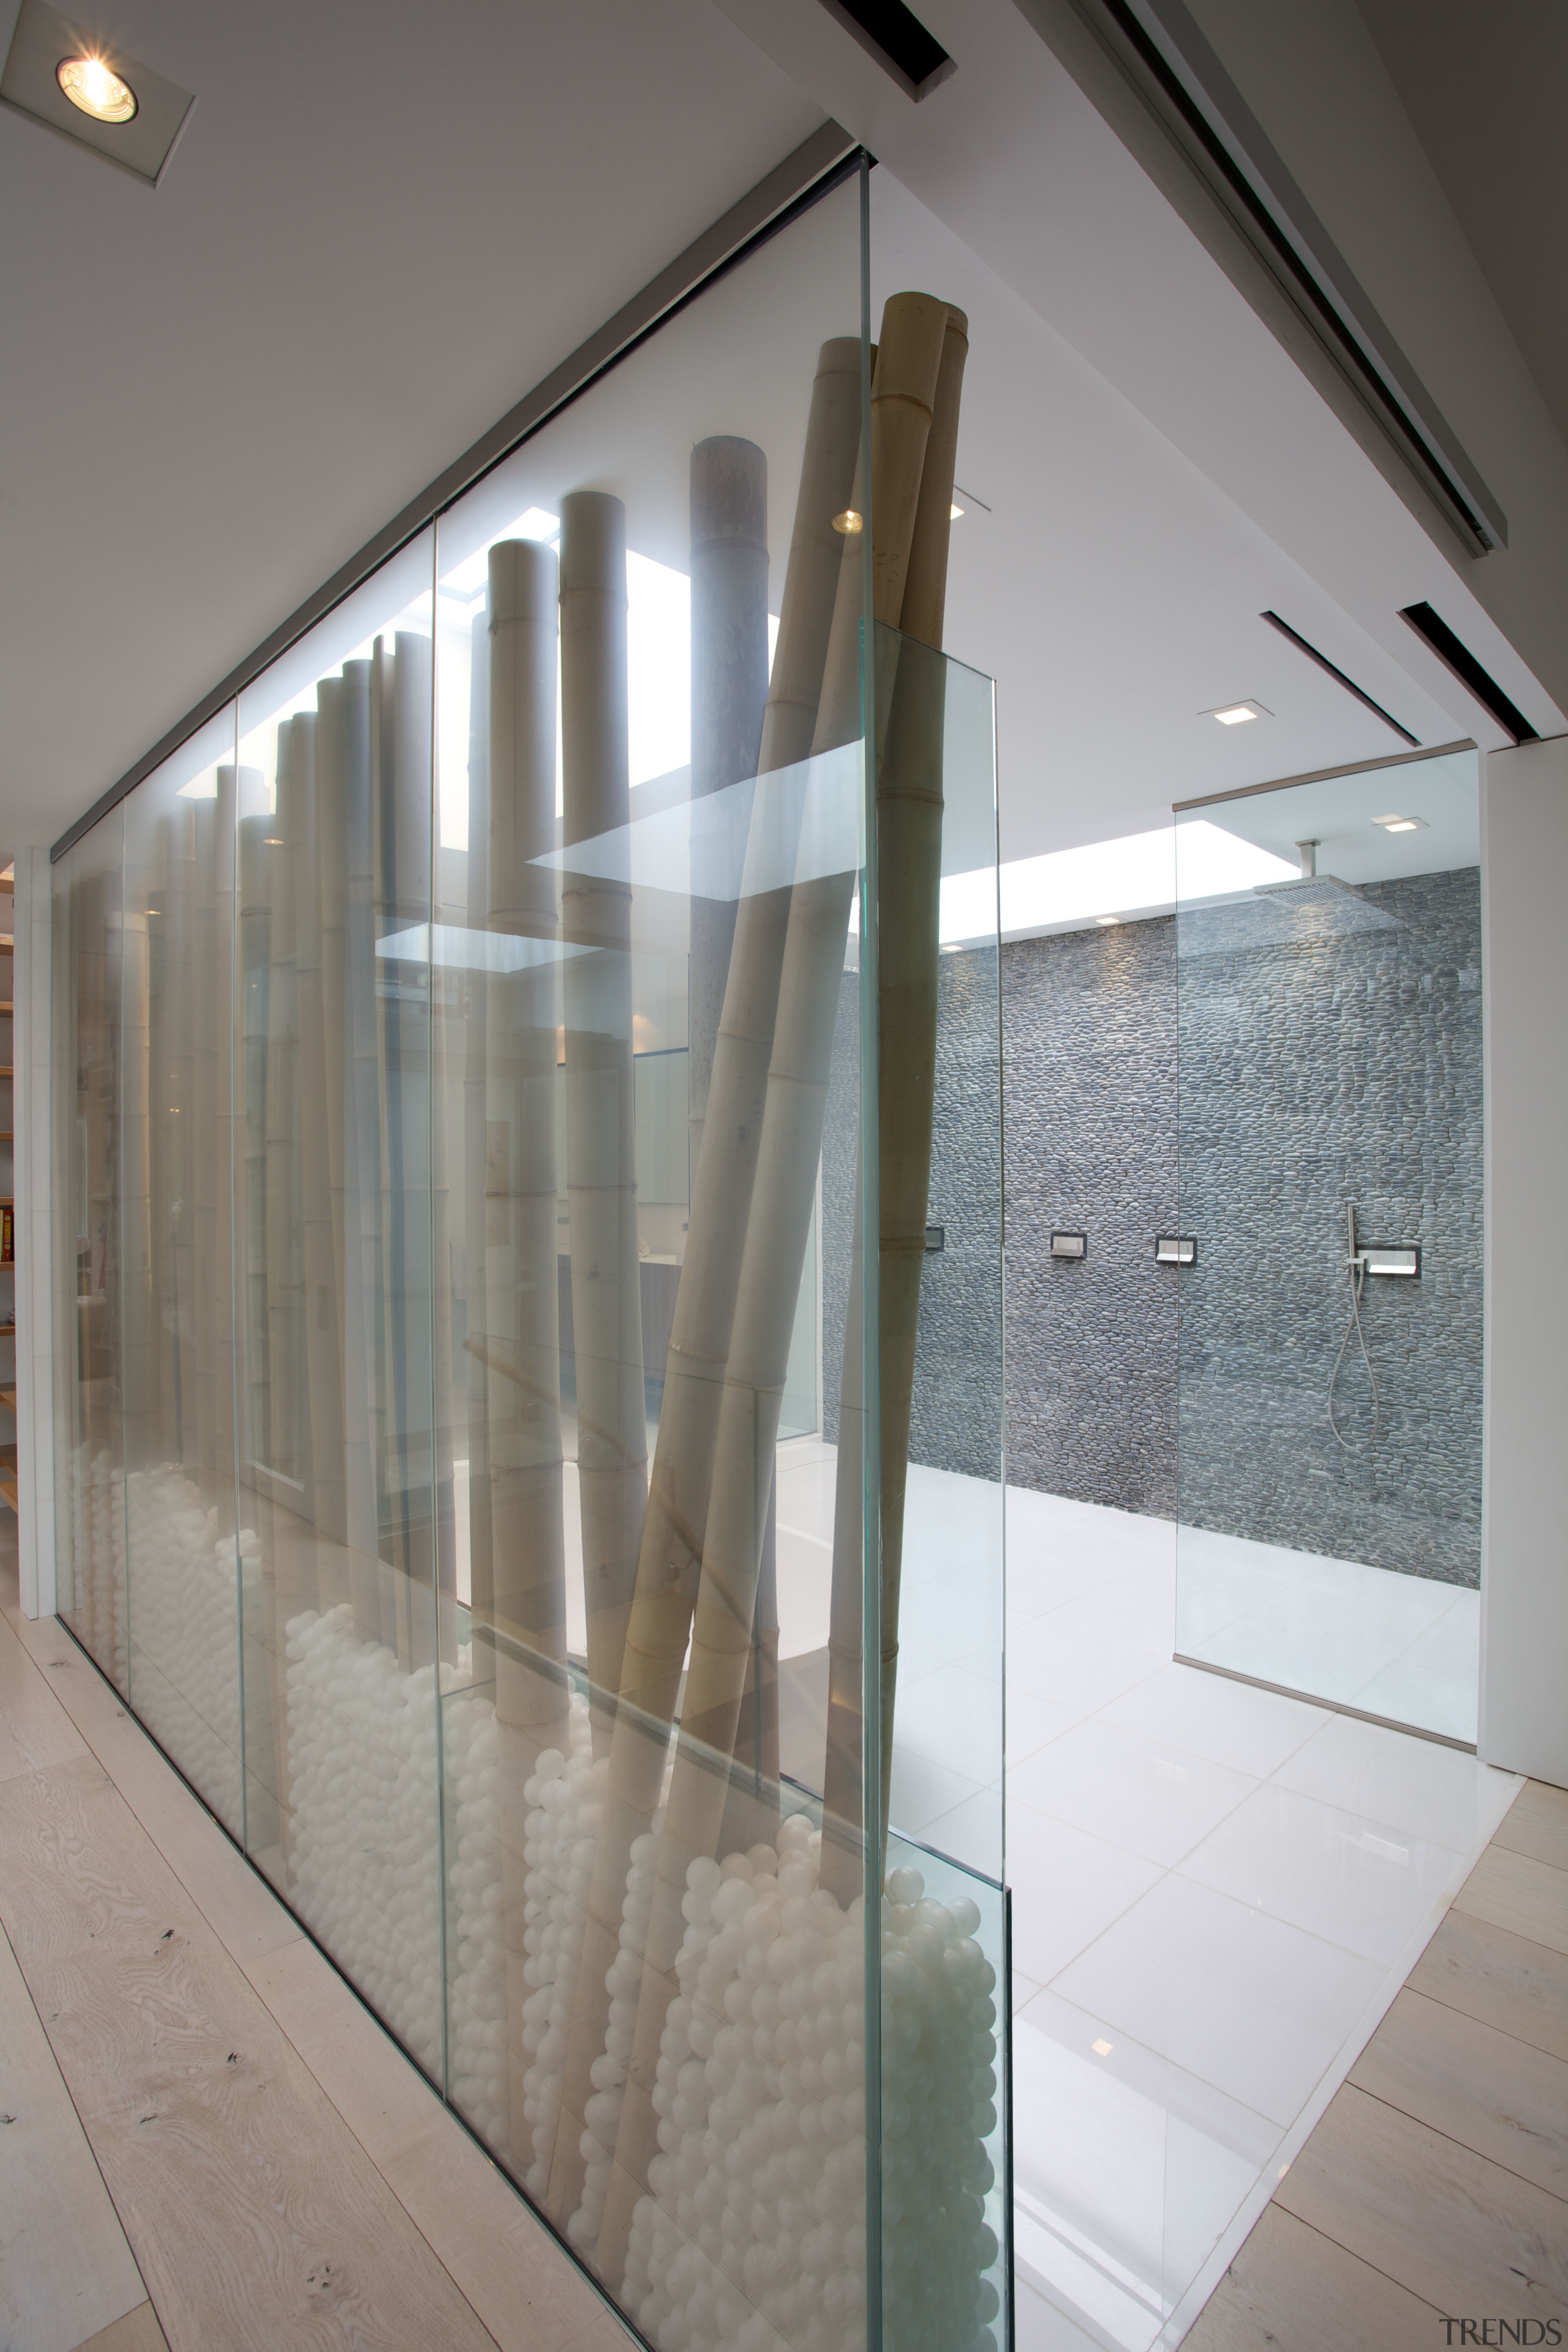 This electric glass screen can turn opaque at architecture, daylighting, floor, glass, handrail, interior design, lobby, gray